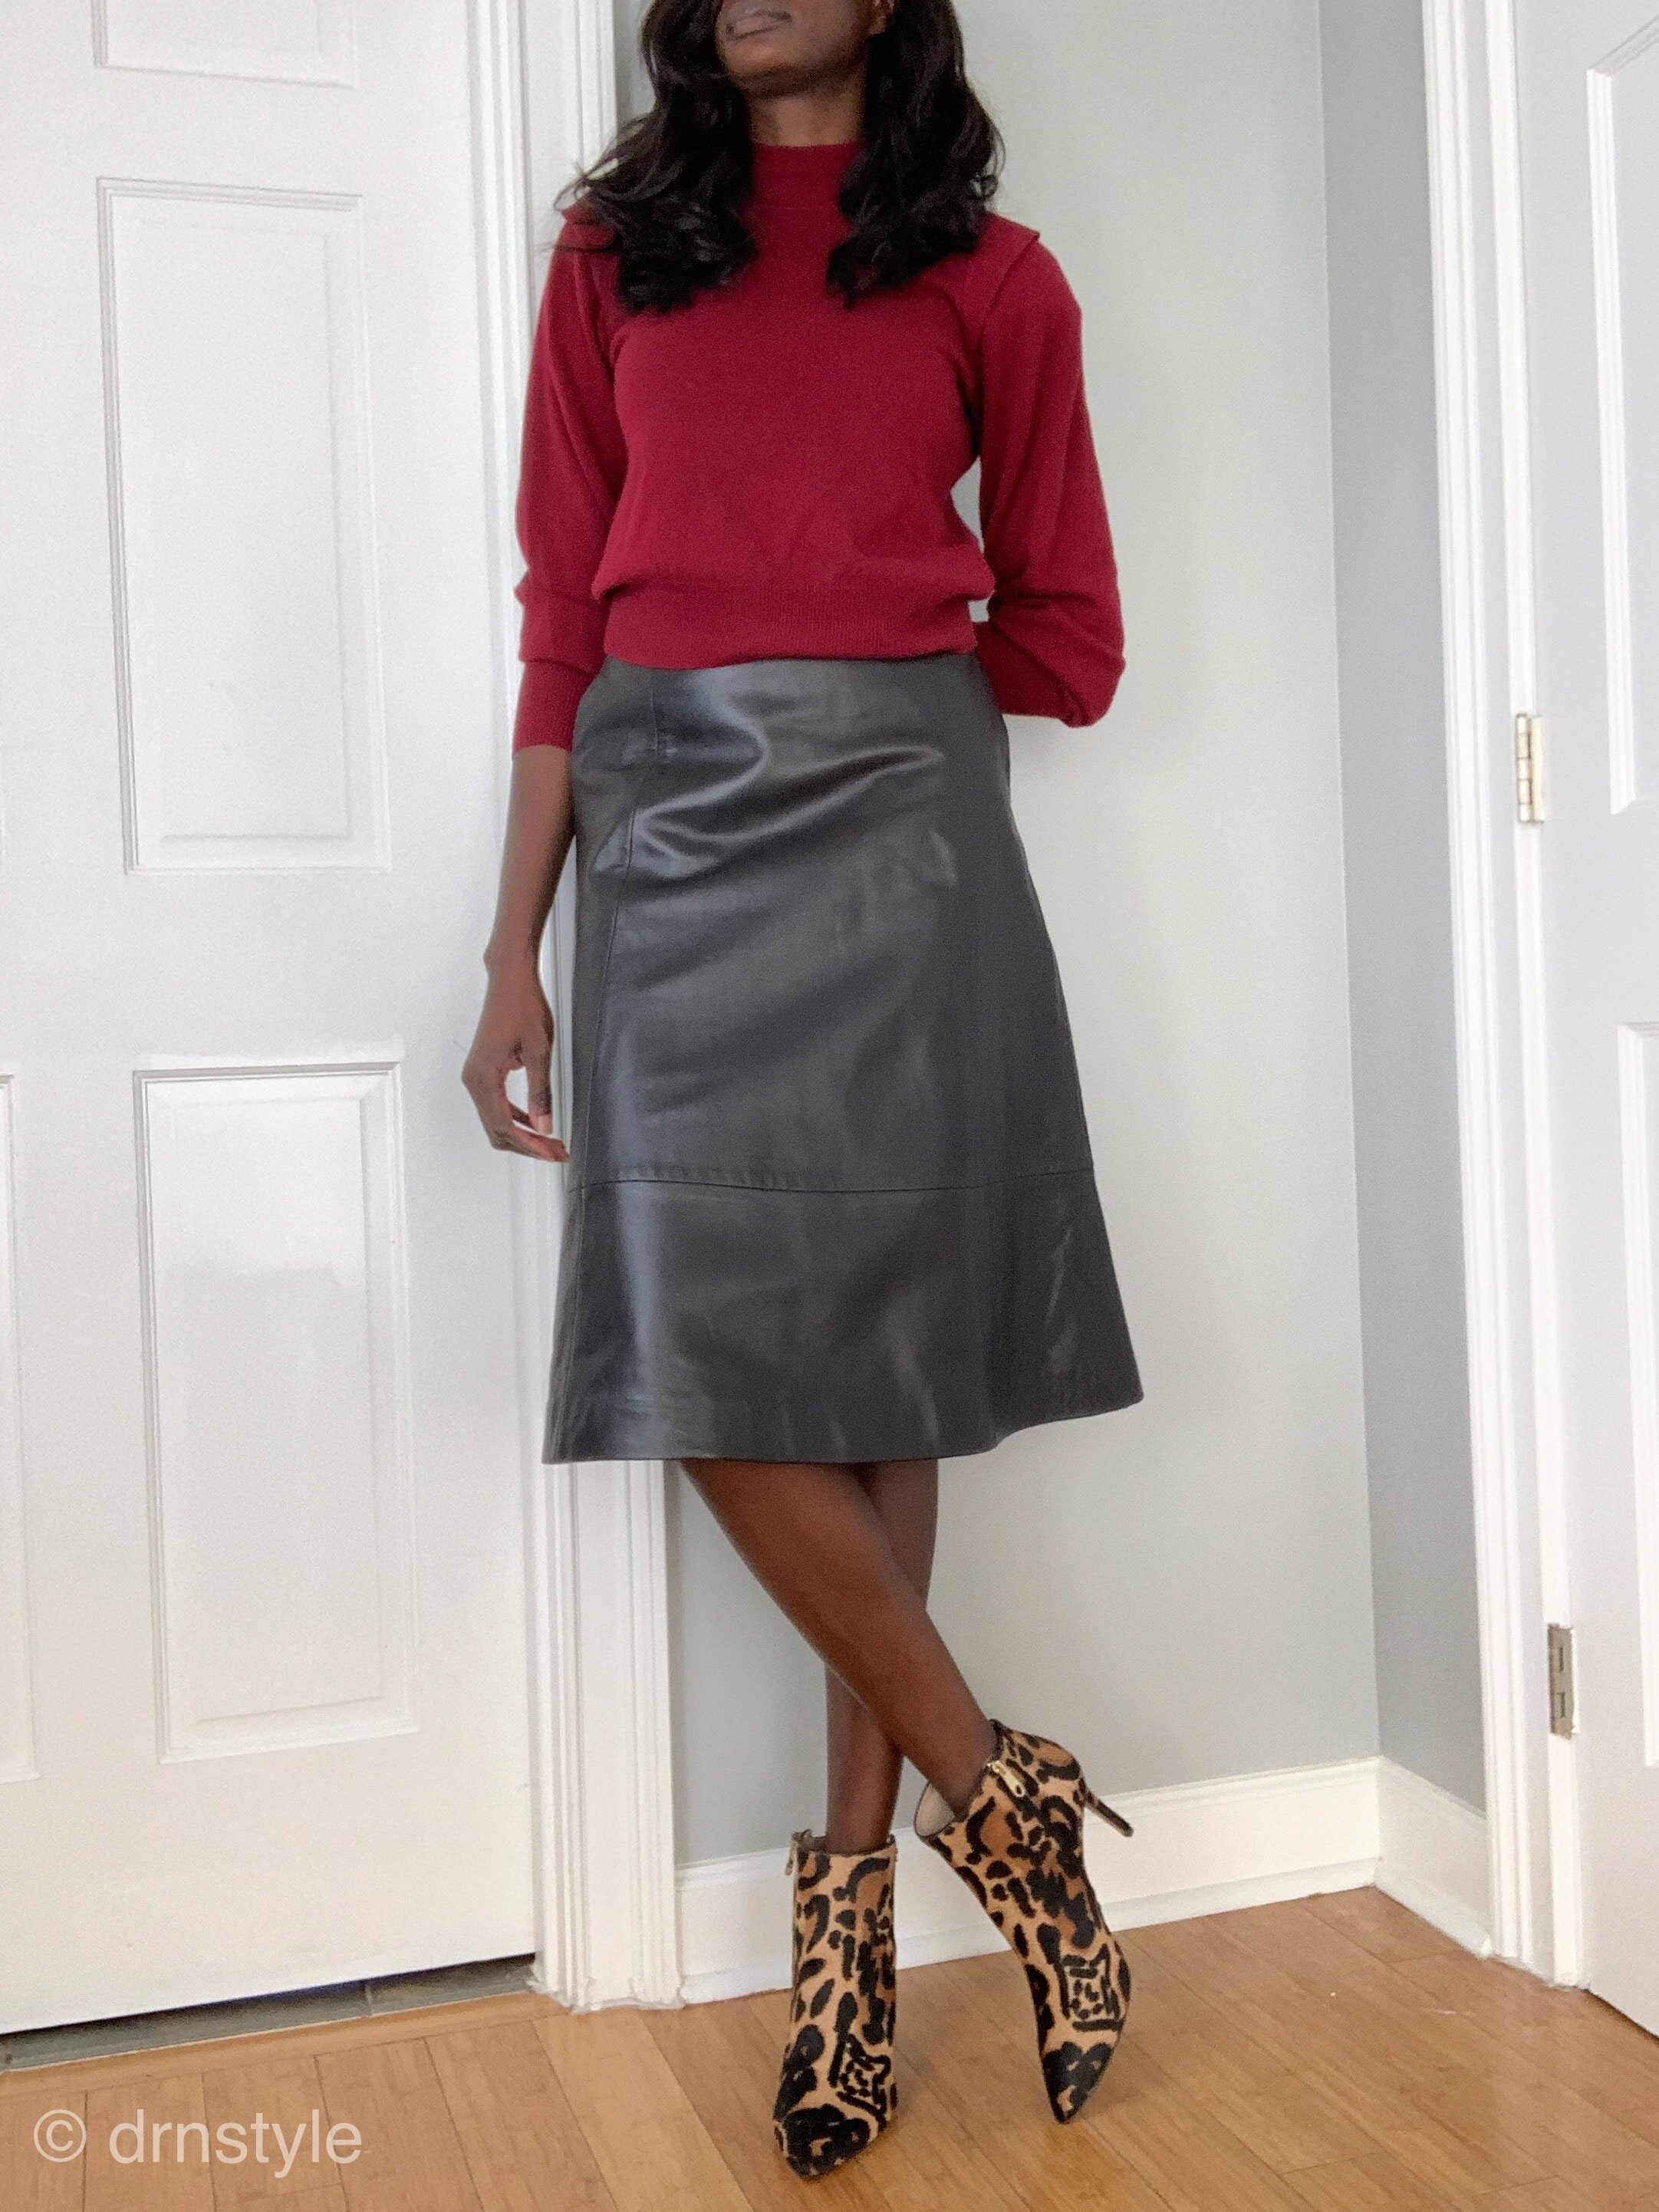 Leopard print booties can be worn with professional attire and dressed up with a sweater and leather skirt.